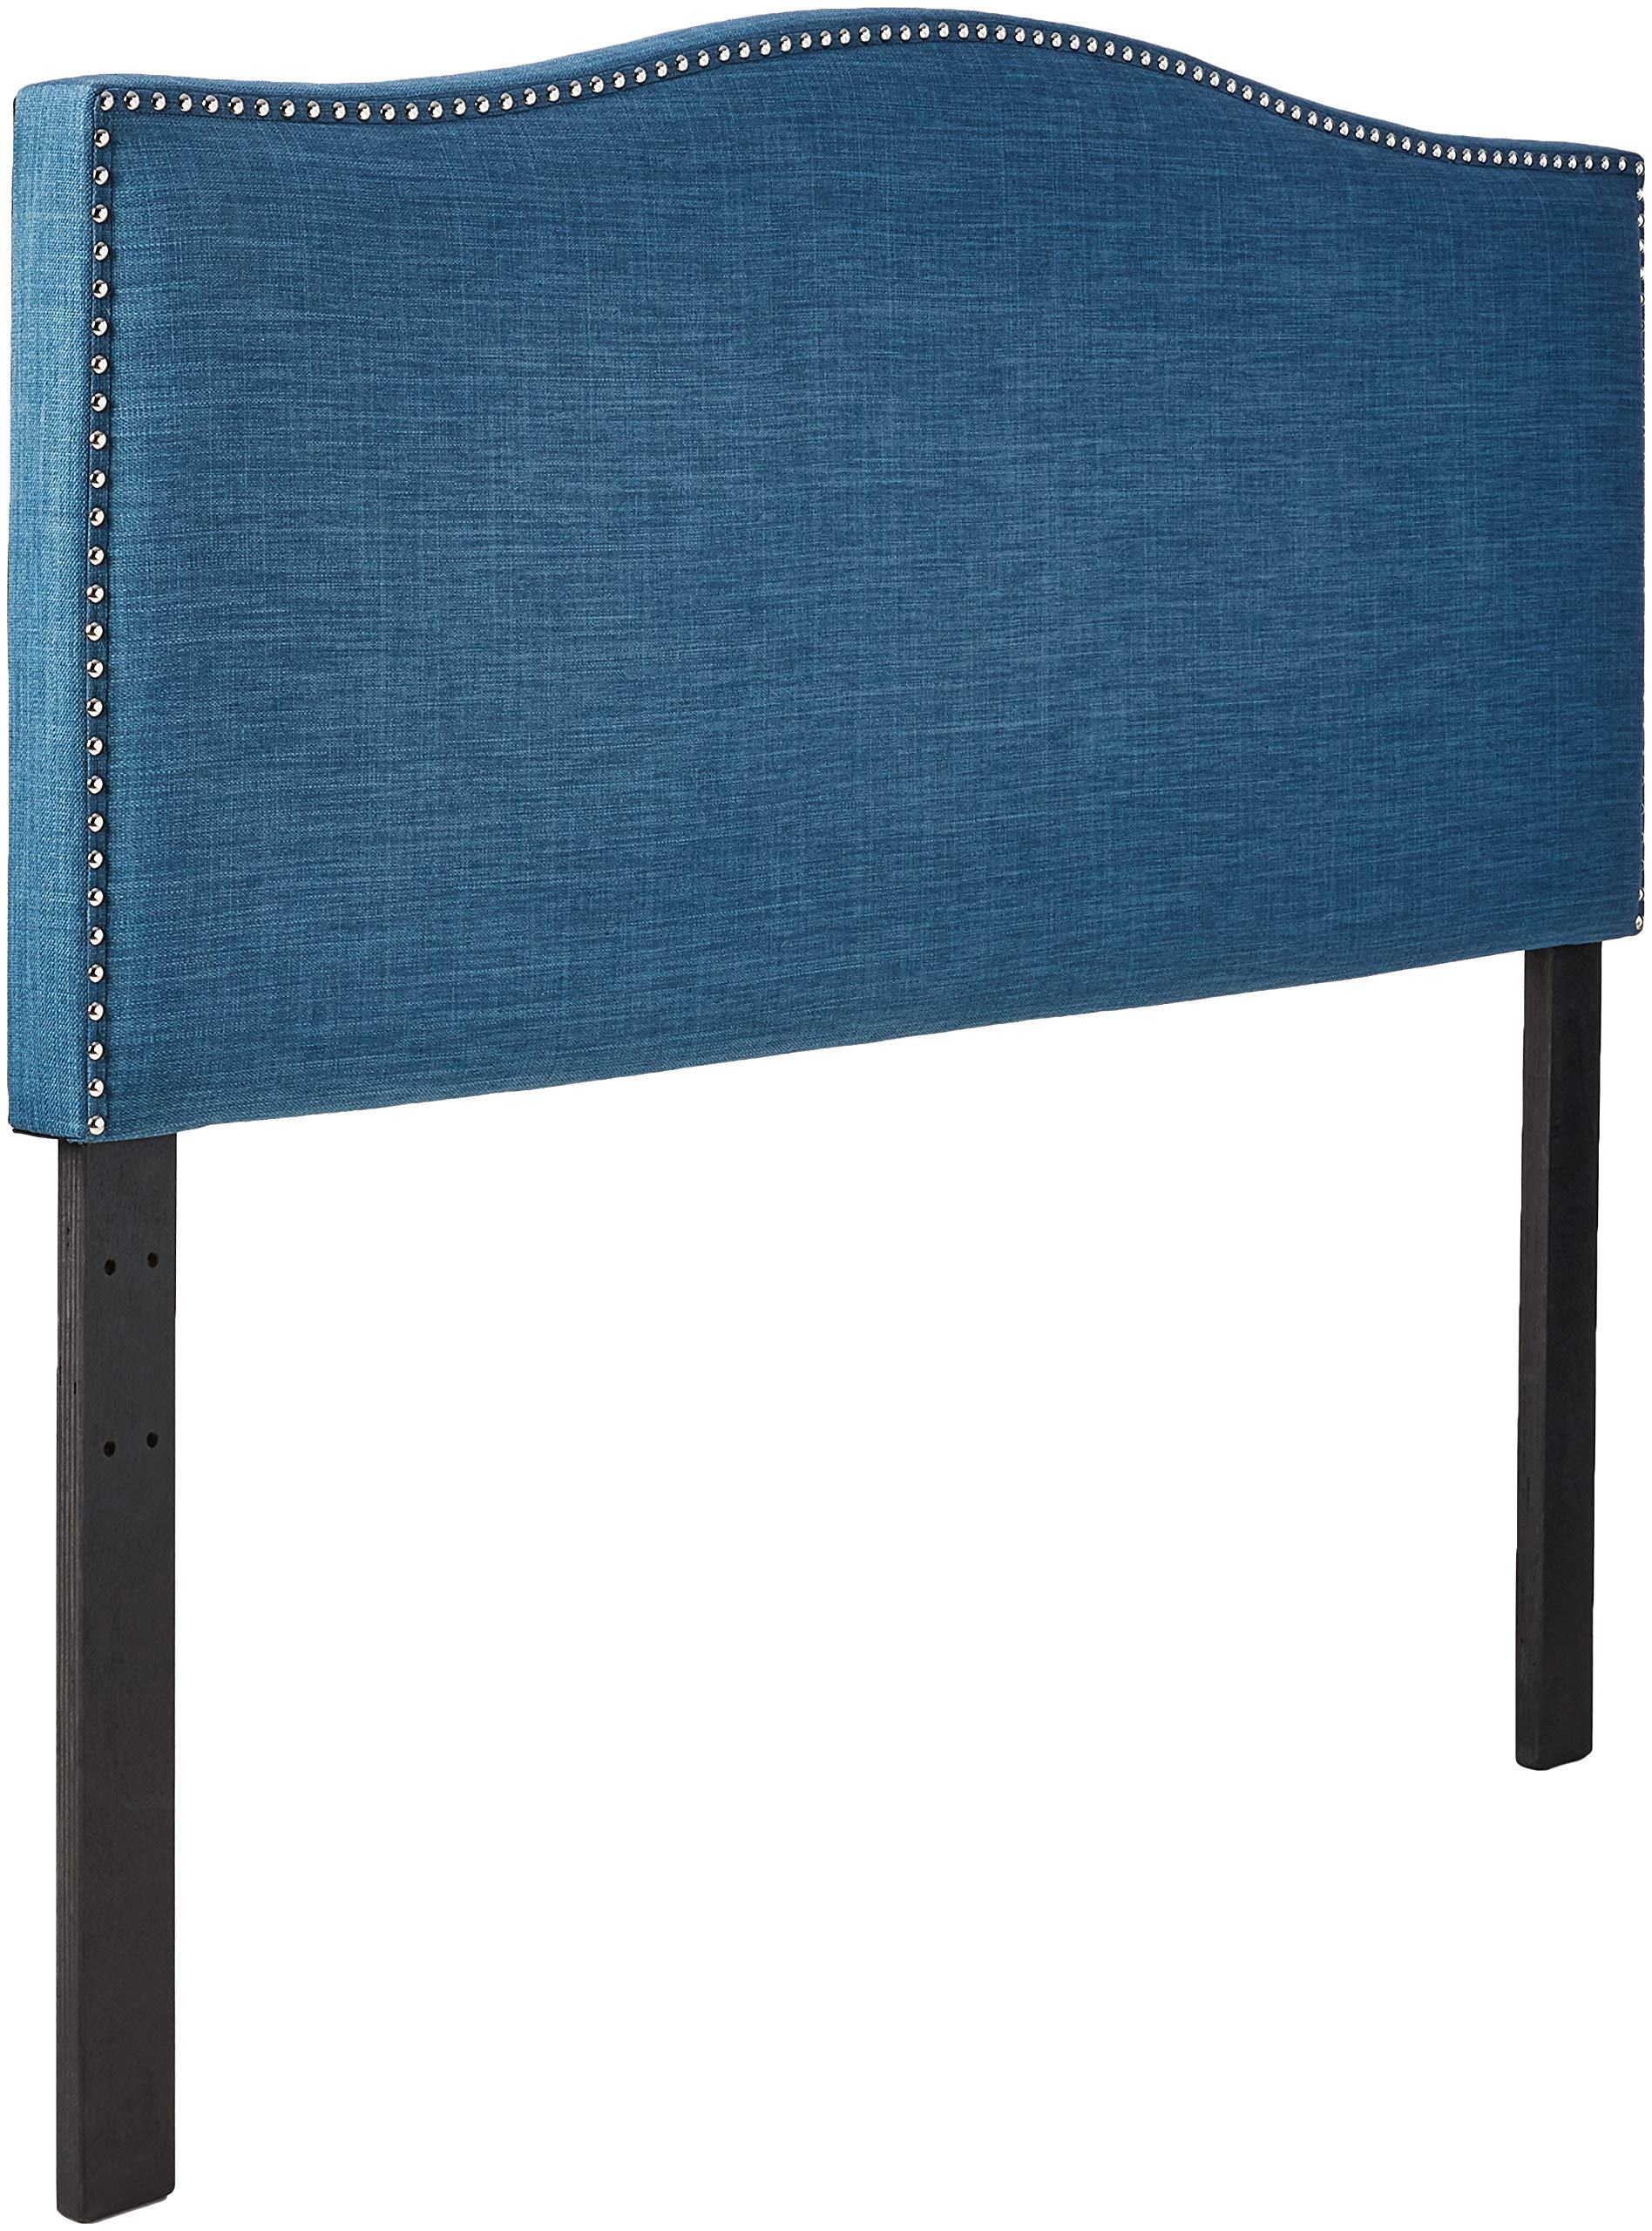 Ravenna Home Haraden Modern Curved-Top King Headboard with Nailhead Trim, 82''W, Blue by Stone & Beam